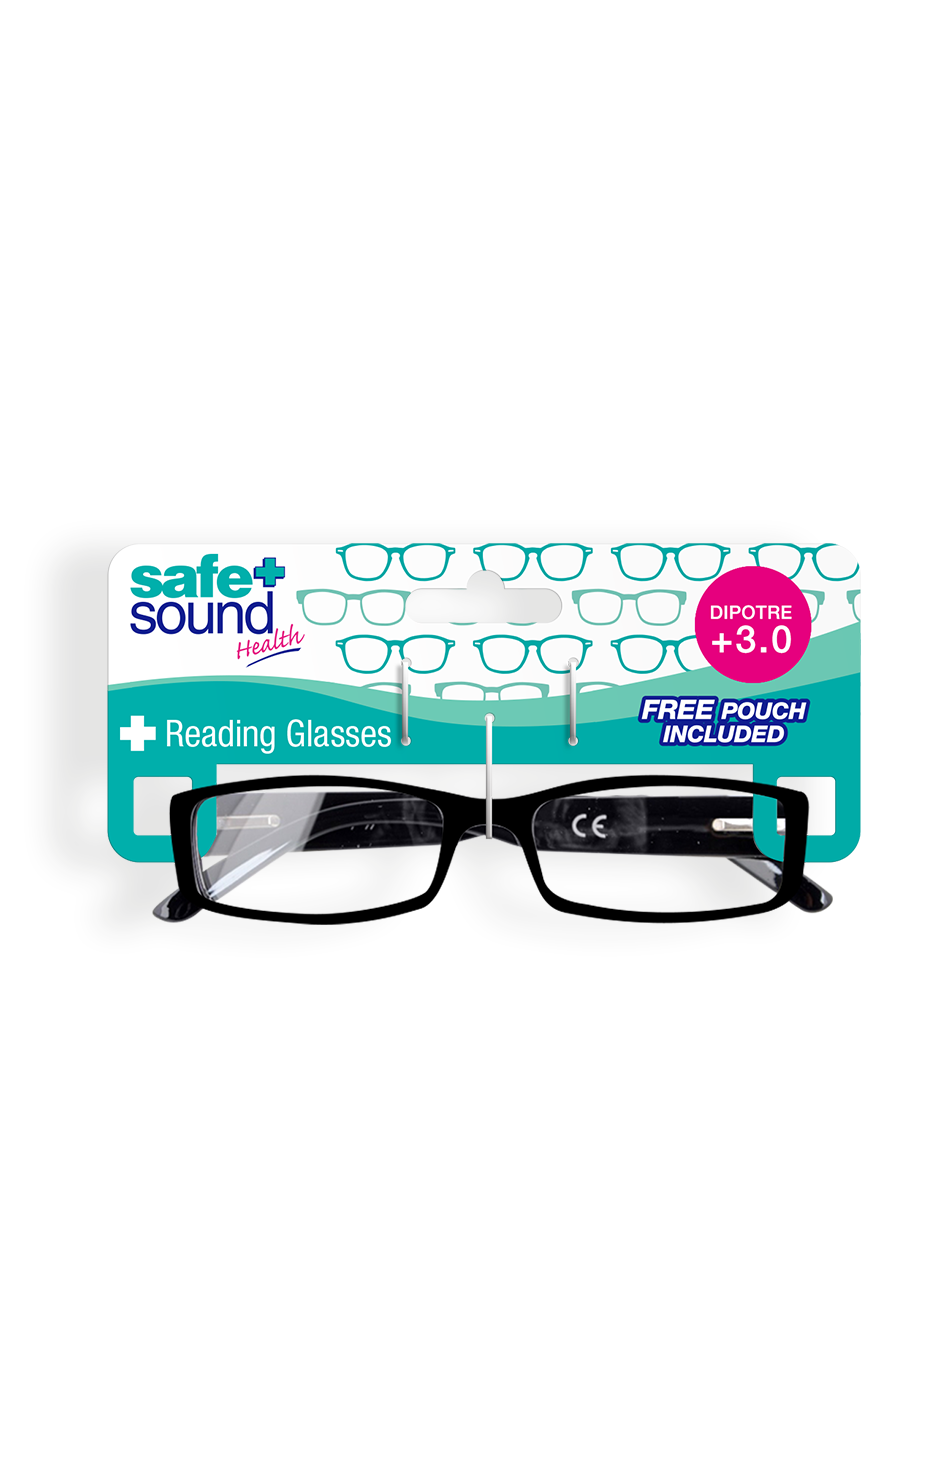 Safe and Sound Health Rectangle Gloss Reading Glasses 3.0 Dioptre